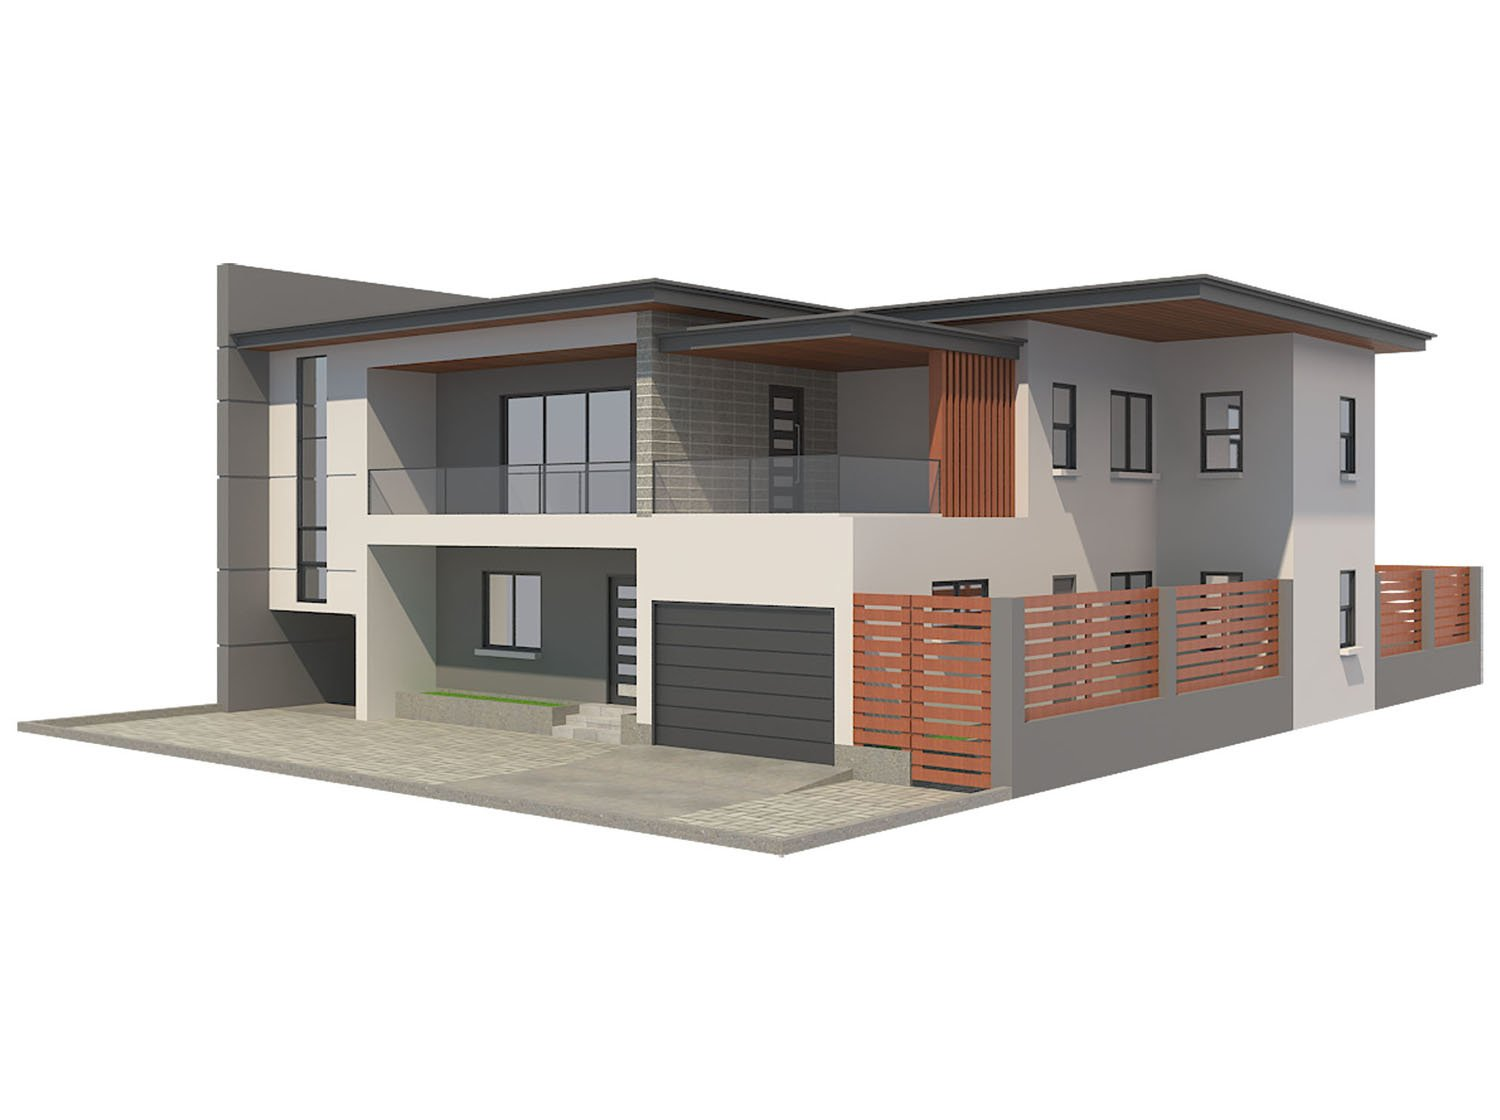 modern house 5 free 3d model in buildings 3dexport - 3d House Models